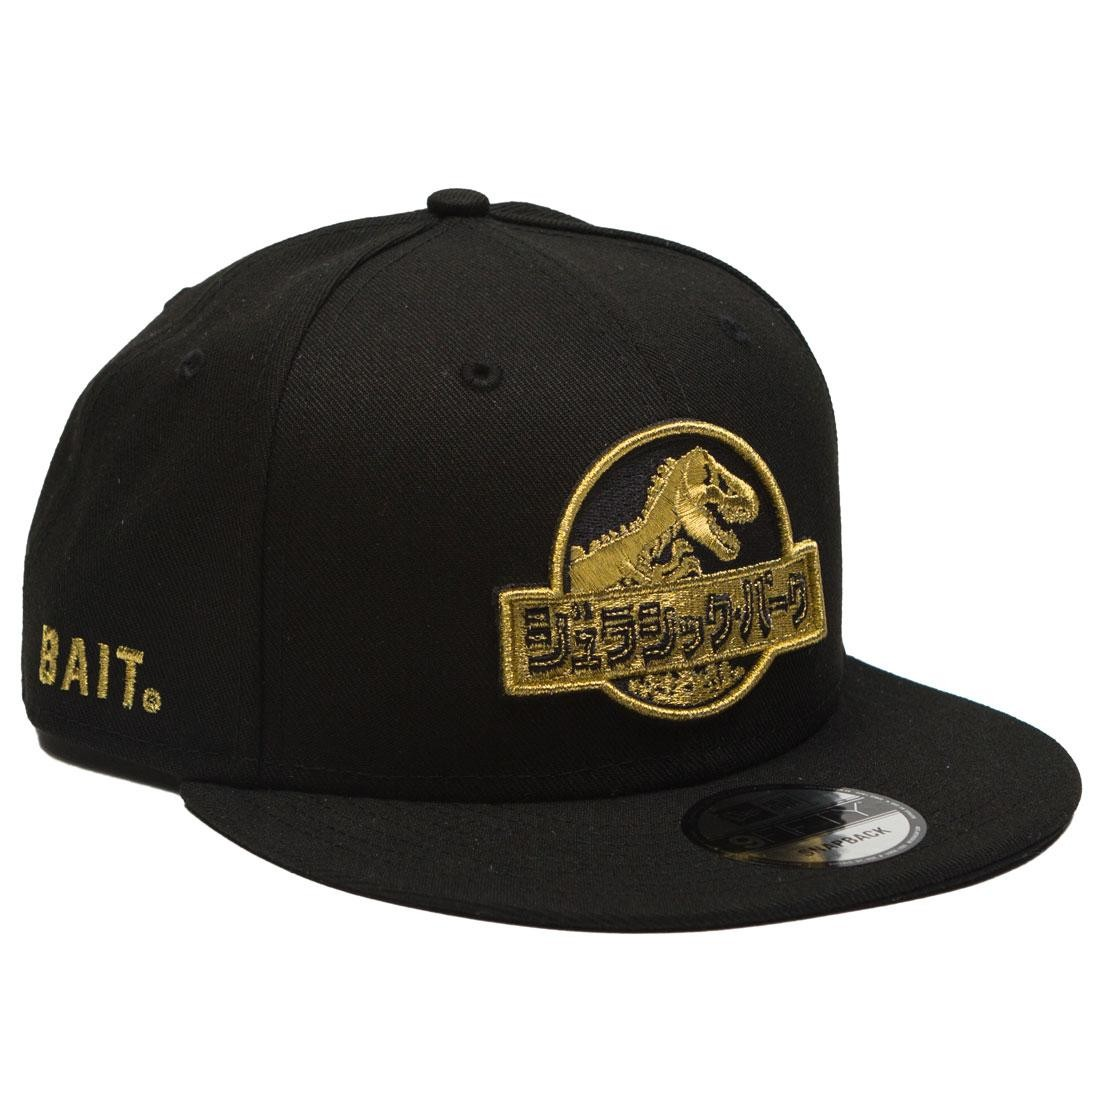 BAIT X Jurassic Park x New Era Damage Control Snapback Cap (black / gold)